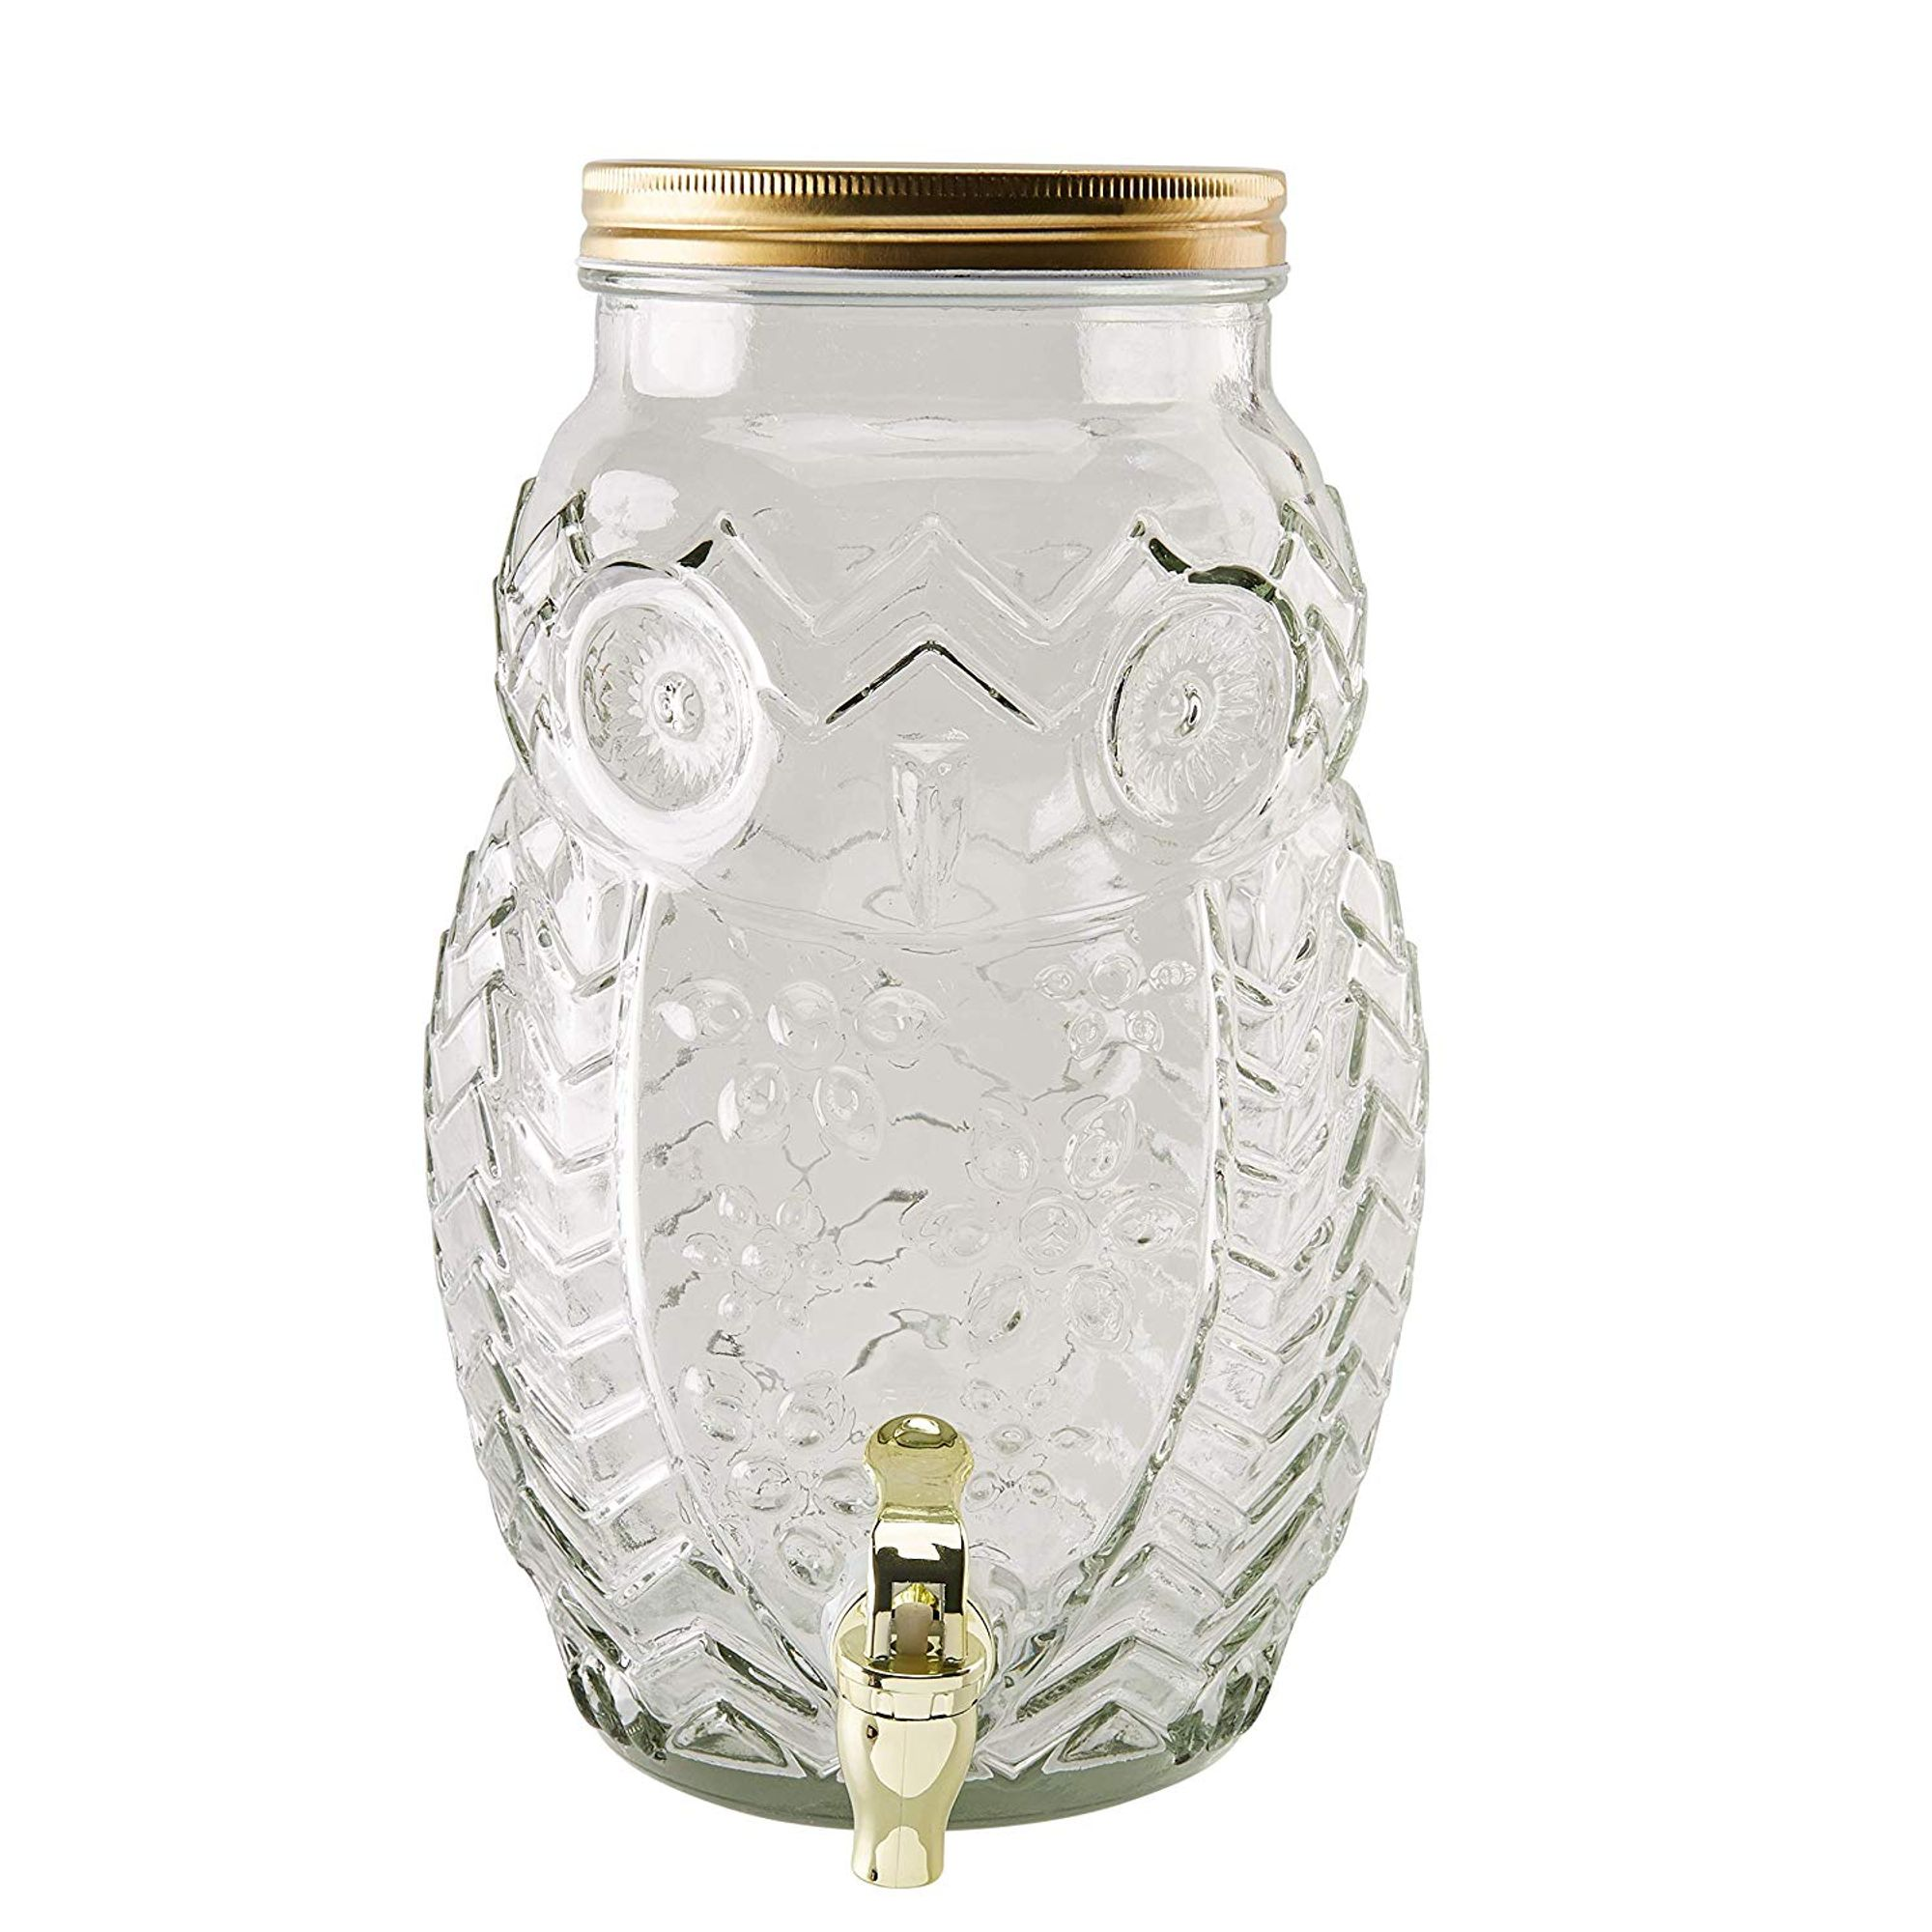 Glass Beverage Dispenser Owl Shaped 1 38 Gallon Mason Jar Drink Container With Lid And Plastic Spigot Wedding Birthday Party Catering Supplies Juice Bar Clear 9 X 8 3 X 12 3 Inches 5 35 Liter Walmart Com Walmart Com